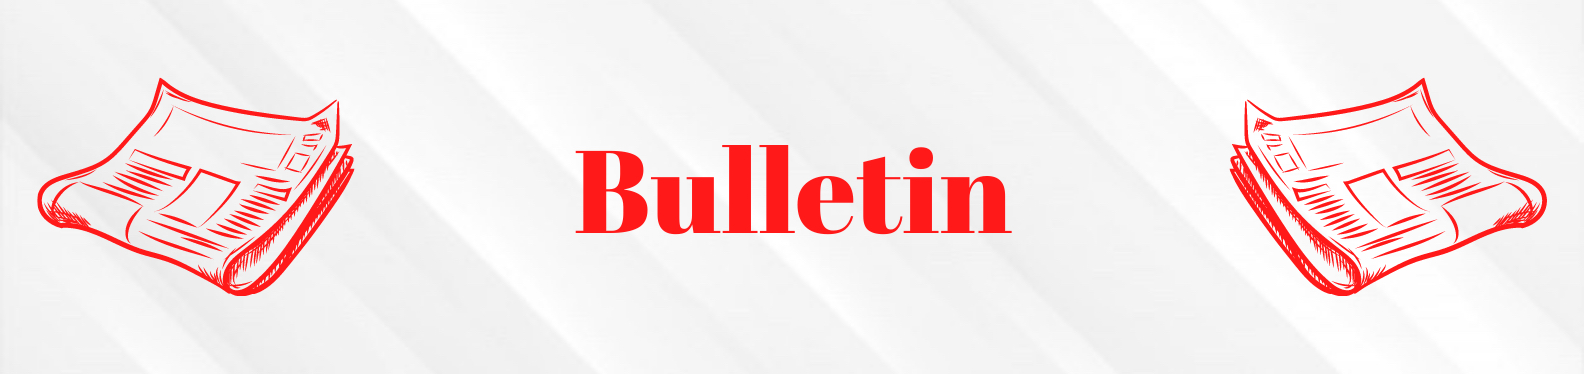 The word bulletin written in red bold writing, on a white background with a silhouette of a newspaper in red outline one on each side of the word.